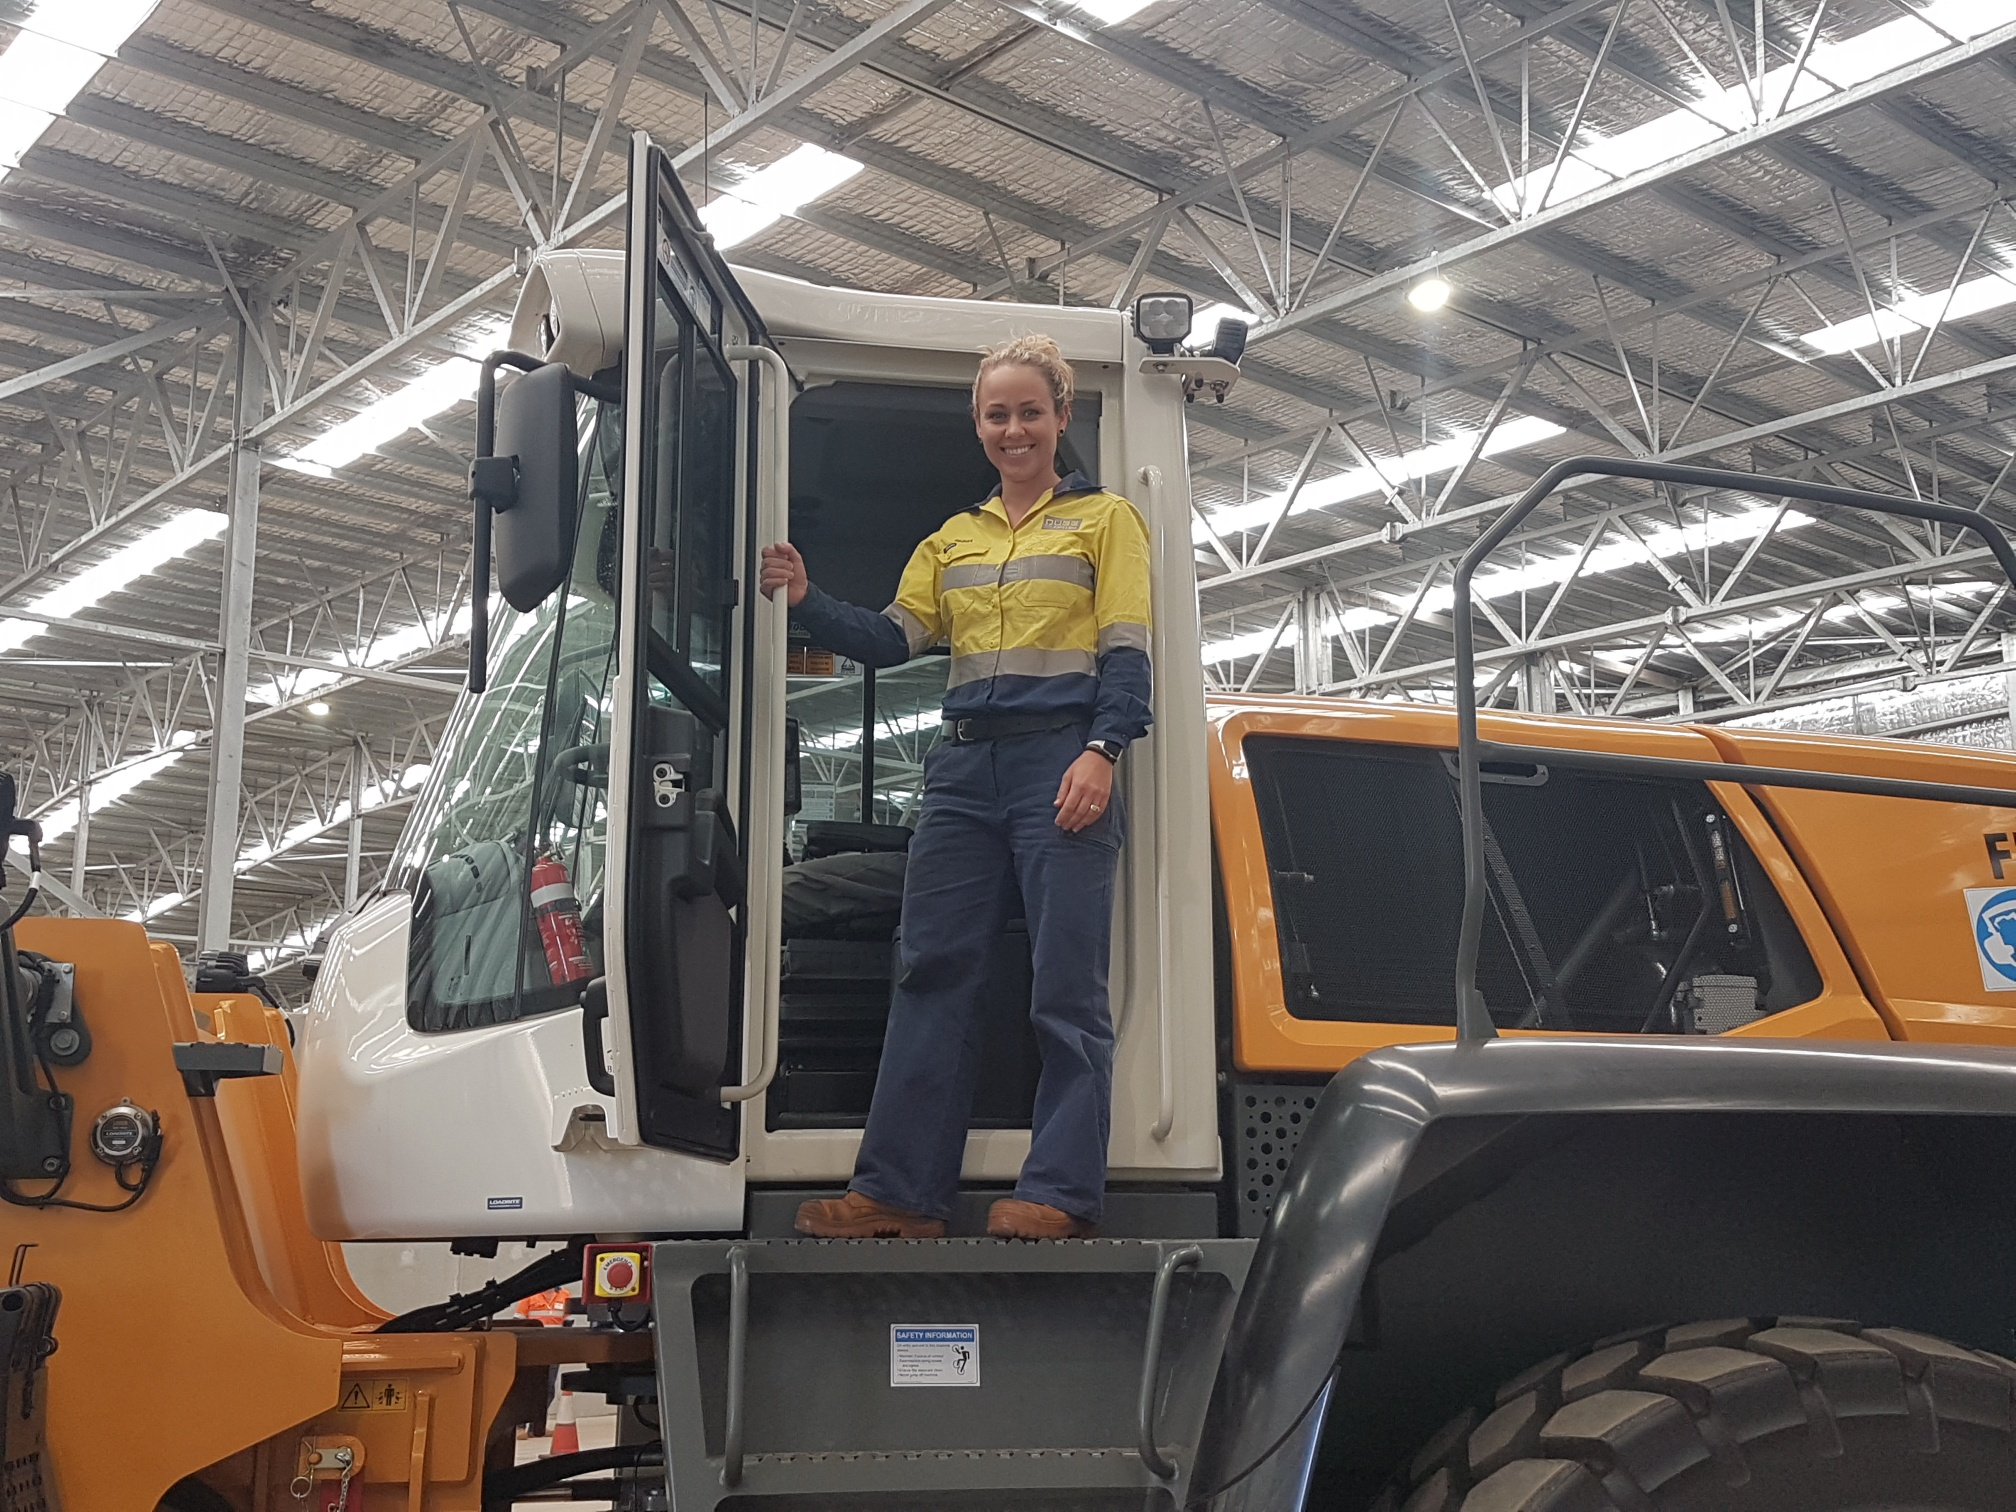 Emma Battelley – Pilbara Health, Safety and Environment Manager, Qube Ports and Bulk